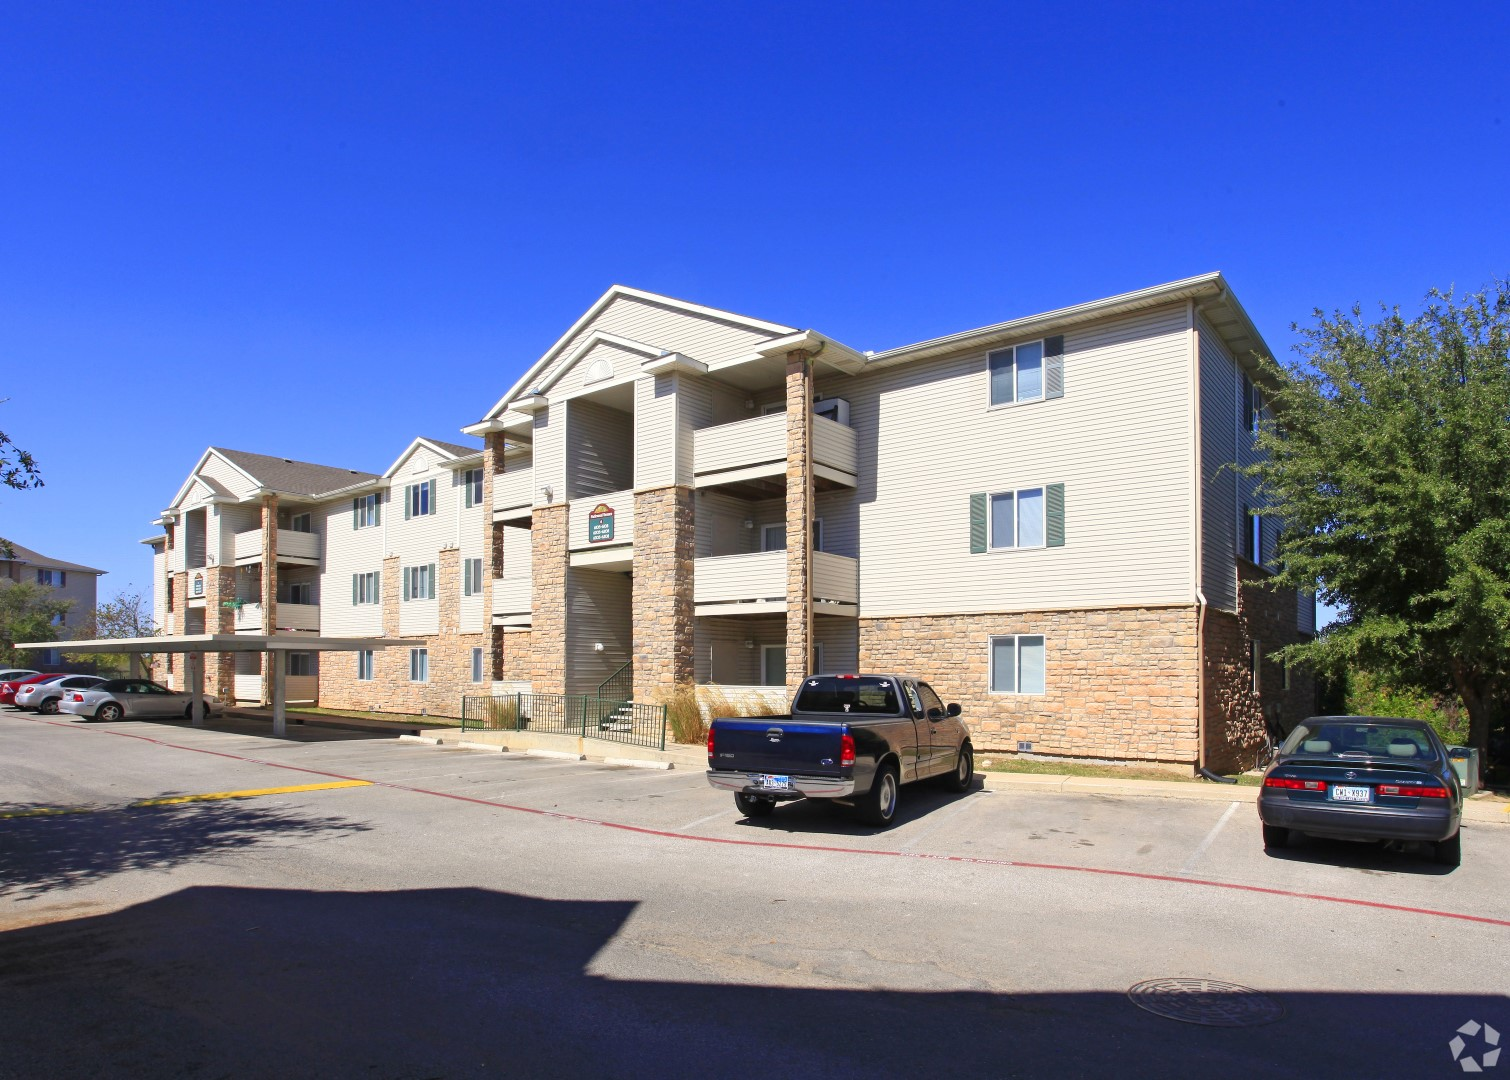 Off Street Parking at Parkwood Terrace, Round Rock, 78664